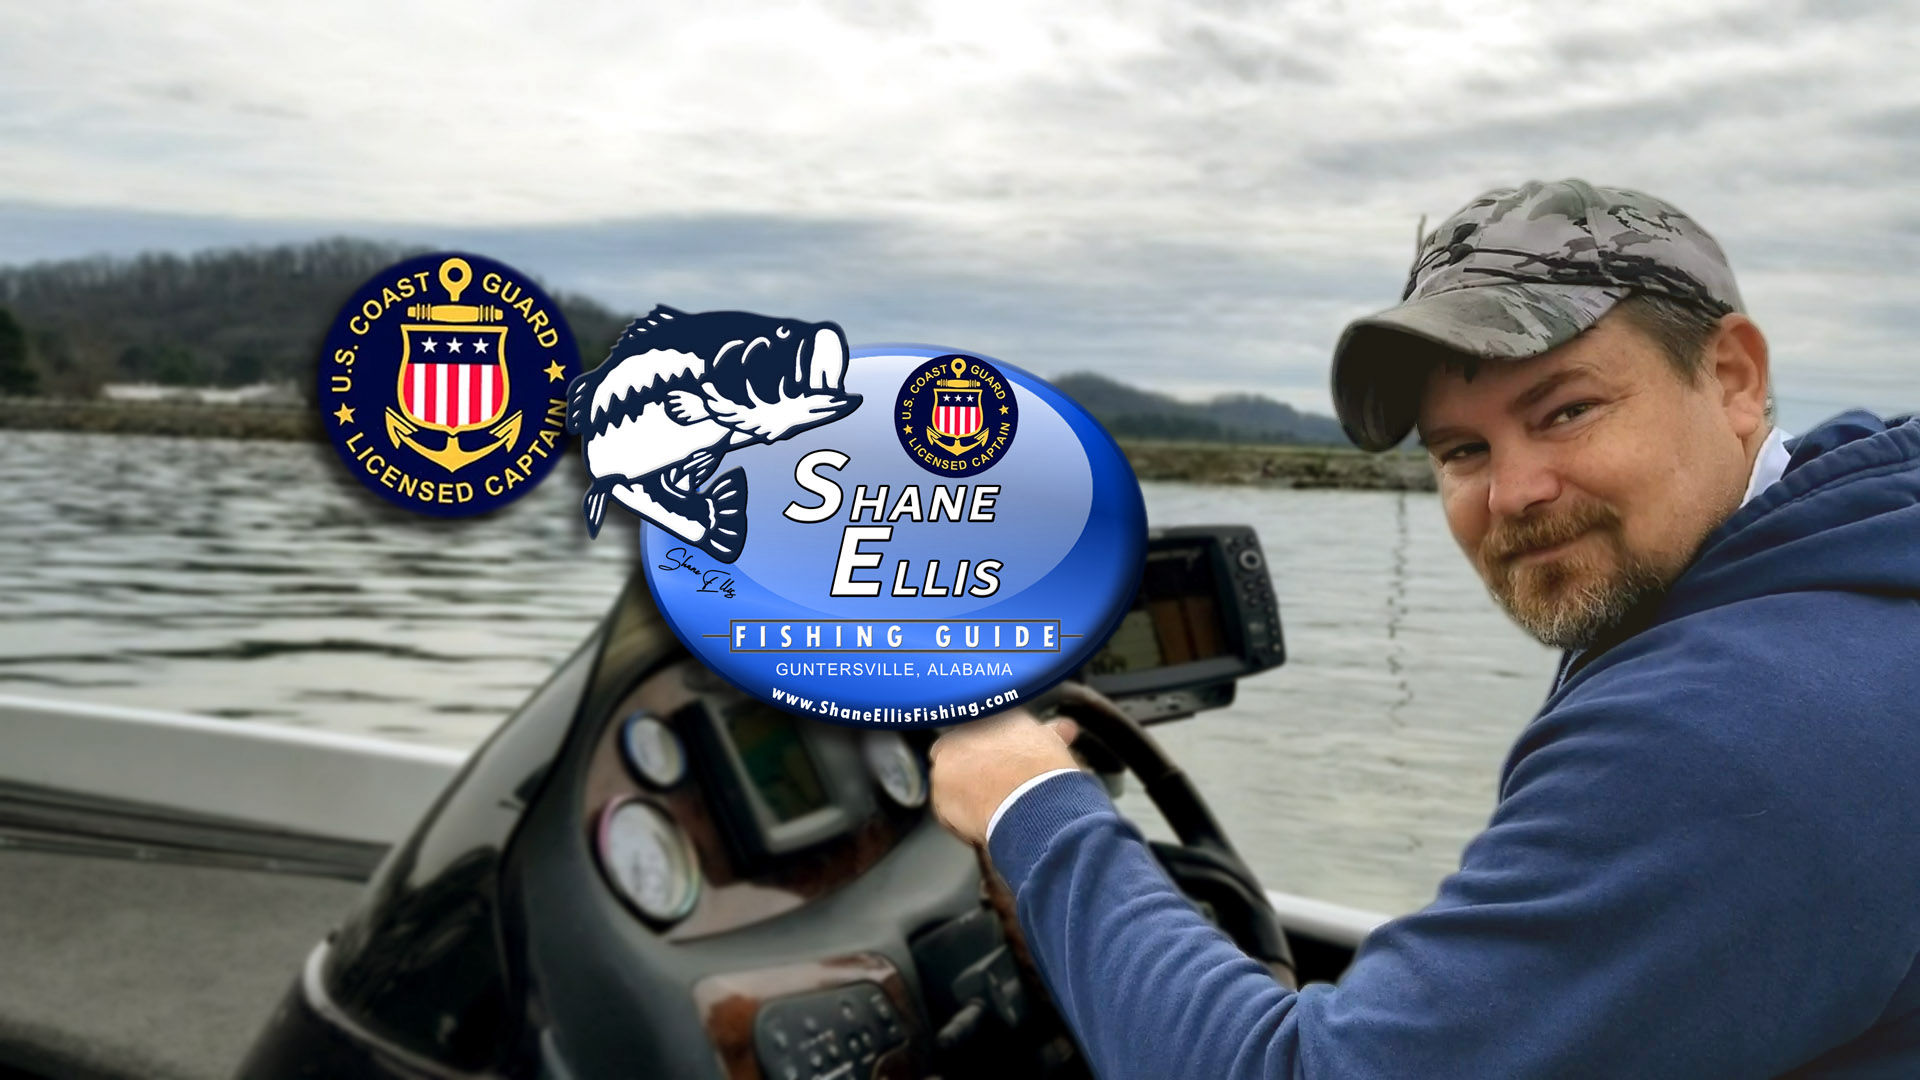 Shane Ellis the Fisherman the Captain